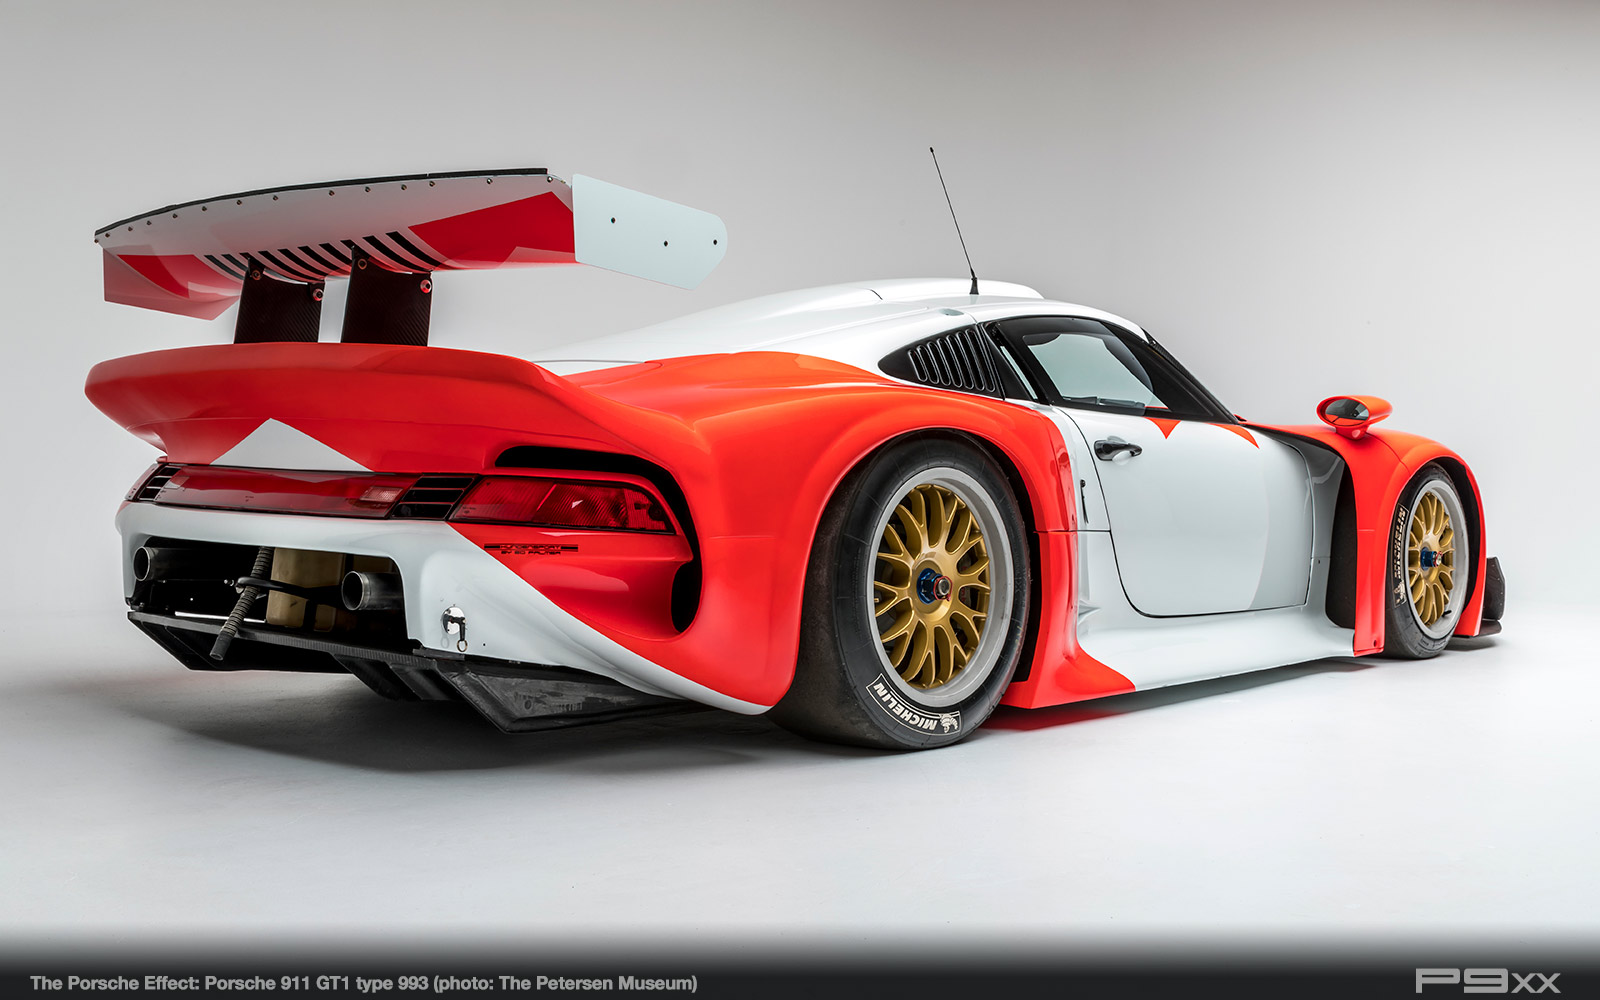 911-GT1-993-Petersen-Automotive-Museum-The-Porsche-Effect-293